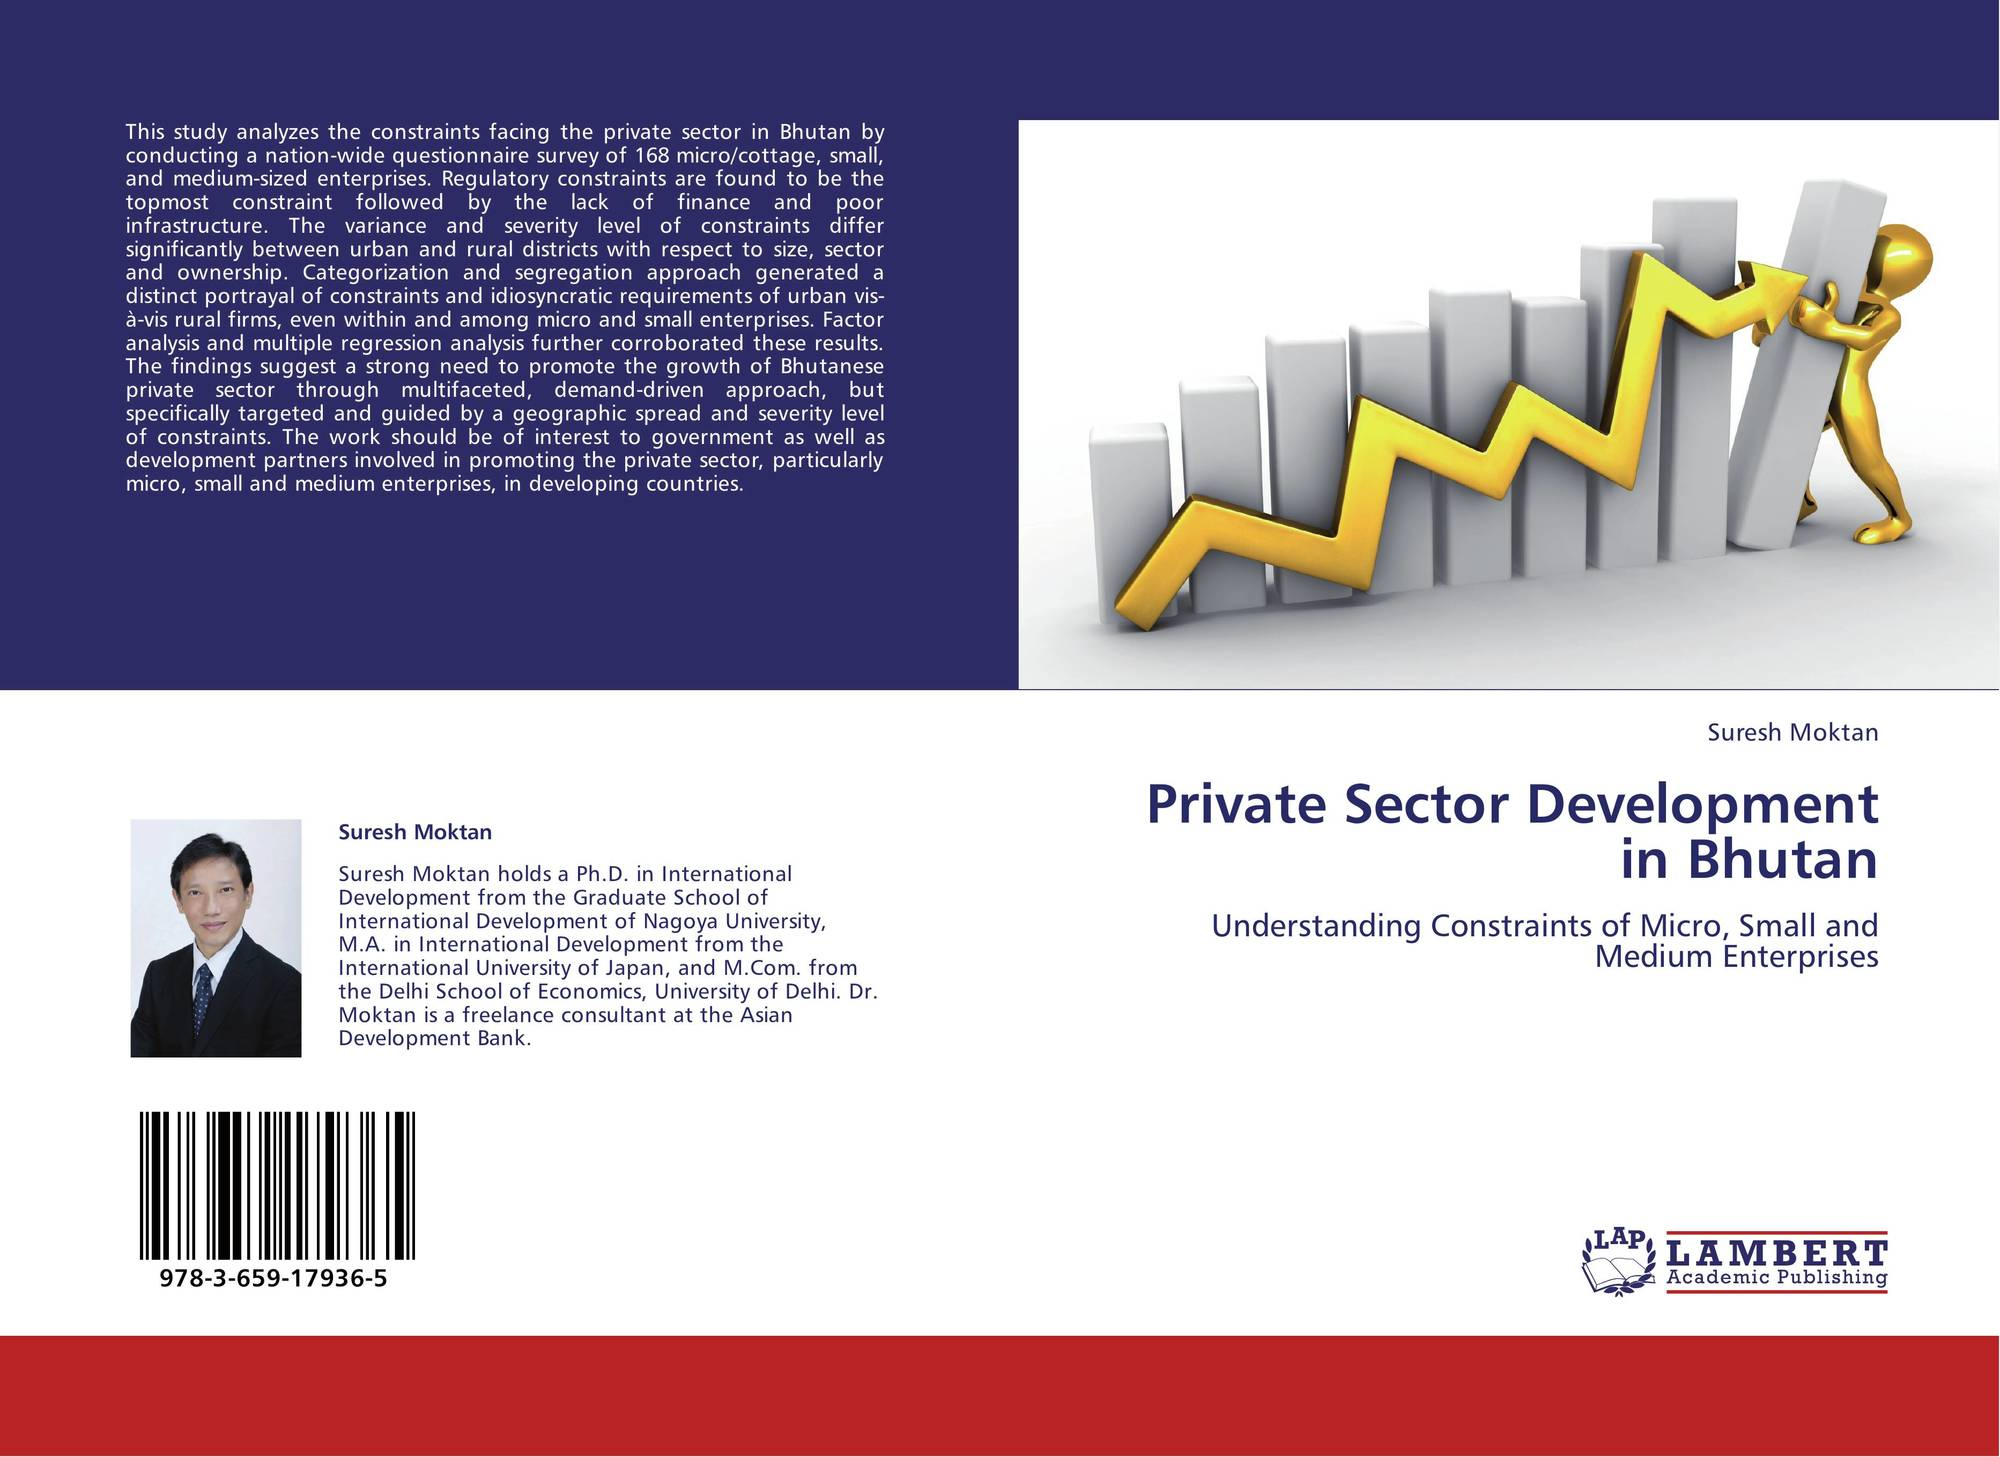 privatization of public enterprise in nigeria economics essay An appraisal of the public enterprises (privatization and commercialization) act no 28 of 1999: its impact in nigeria economic development.